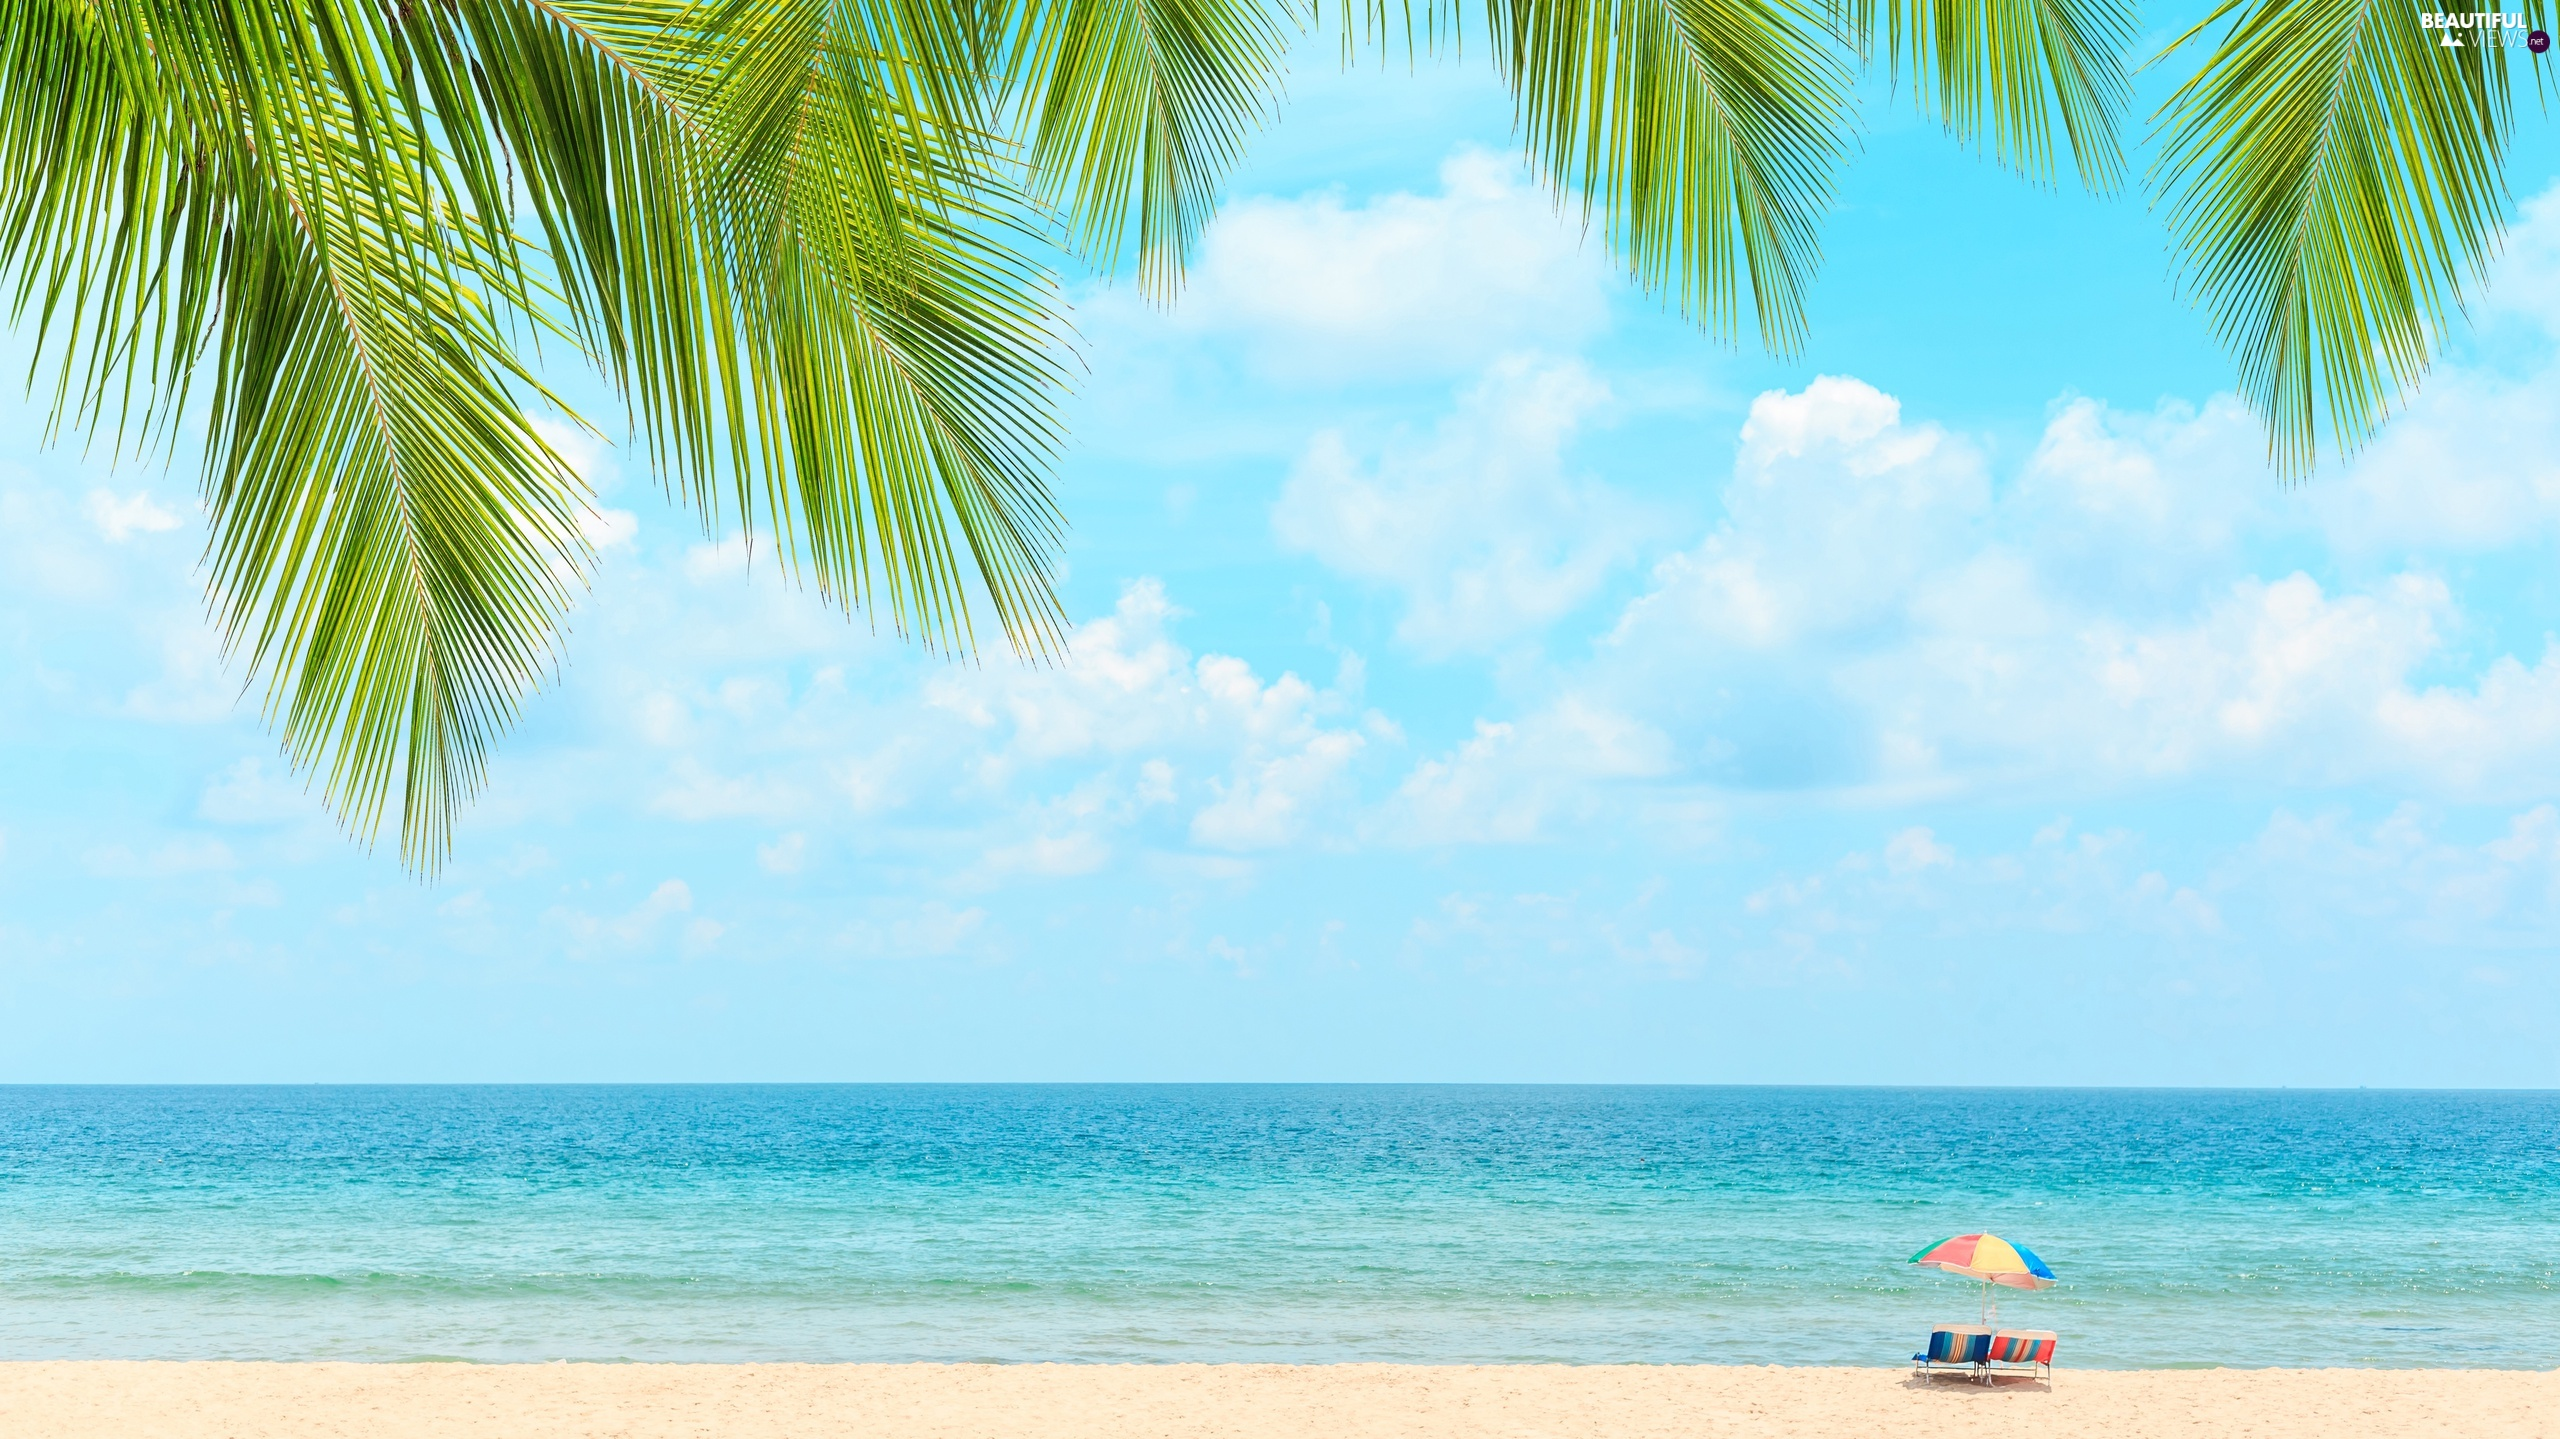 Beaches, sea, deck chair, Umbrella, Palms, holiday, clouds, Leaf, Sky